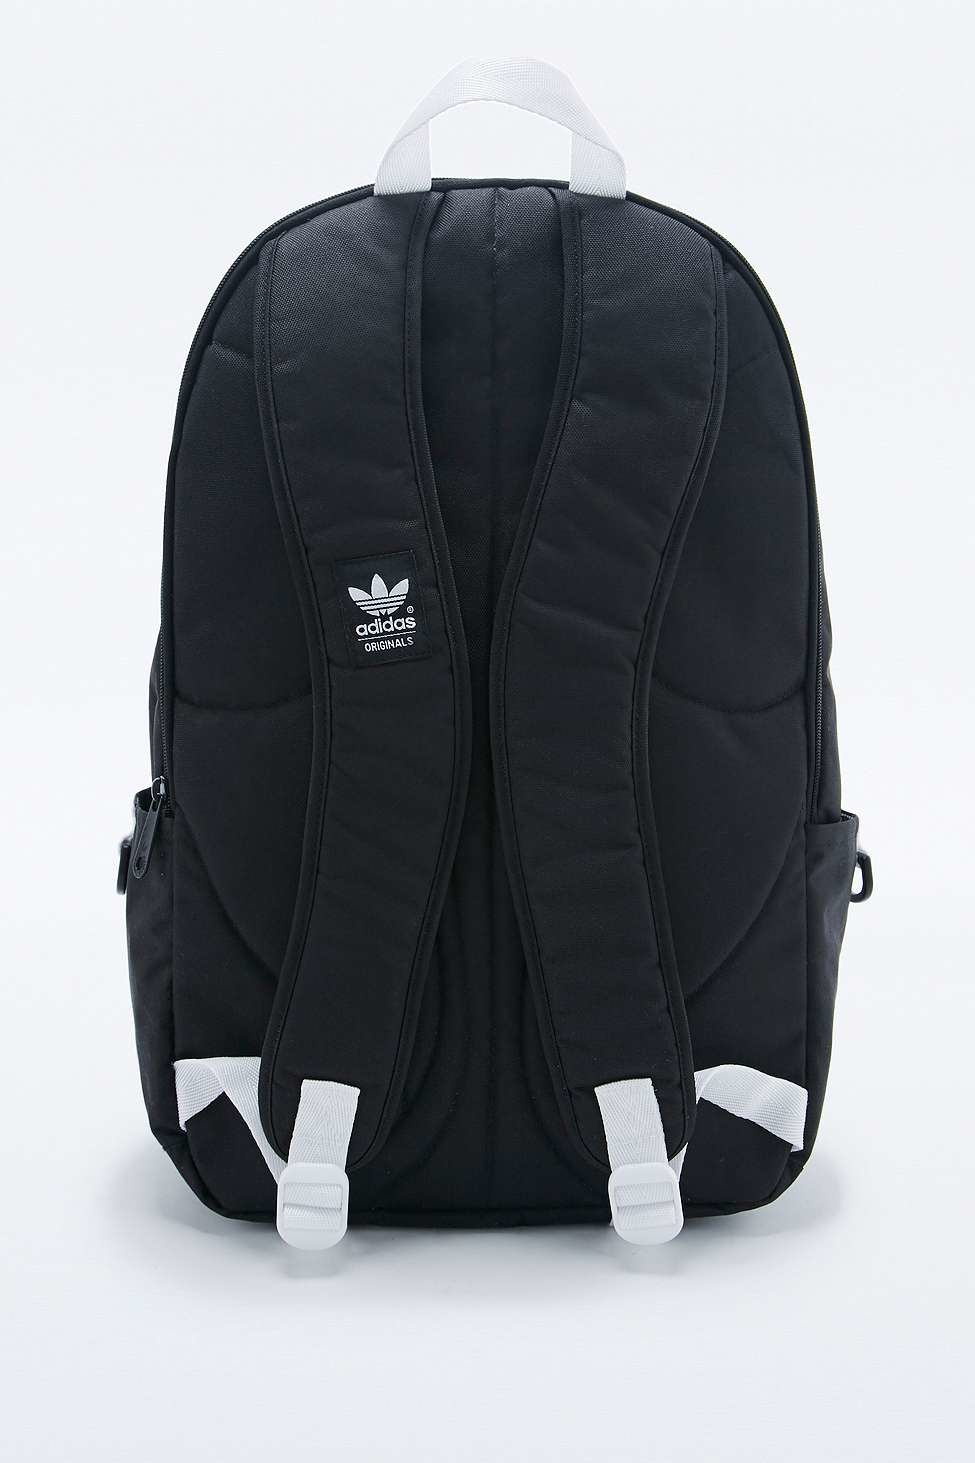 adidas Essential Black And White Backpack in Black for Men - Lyst 3ac3285264812